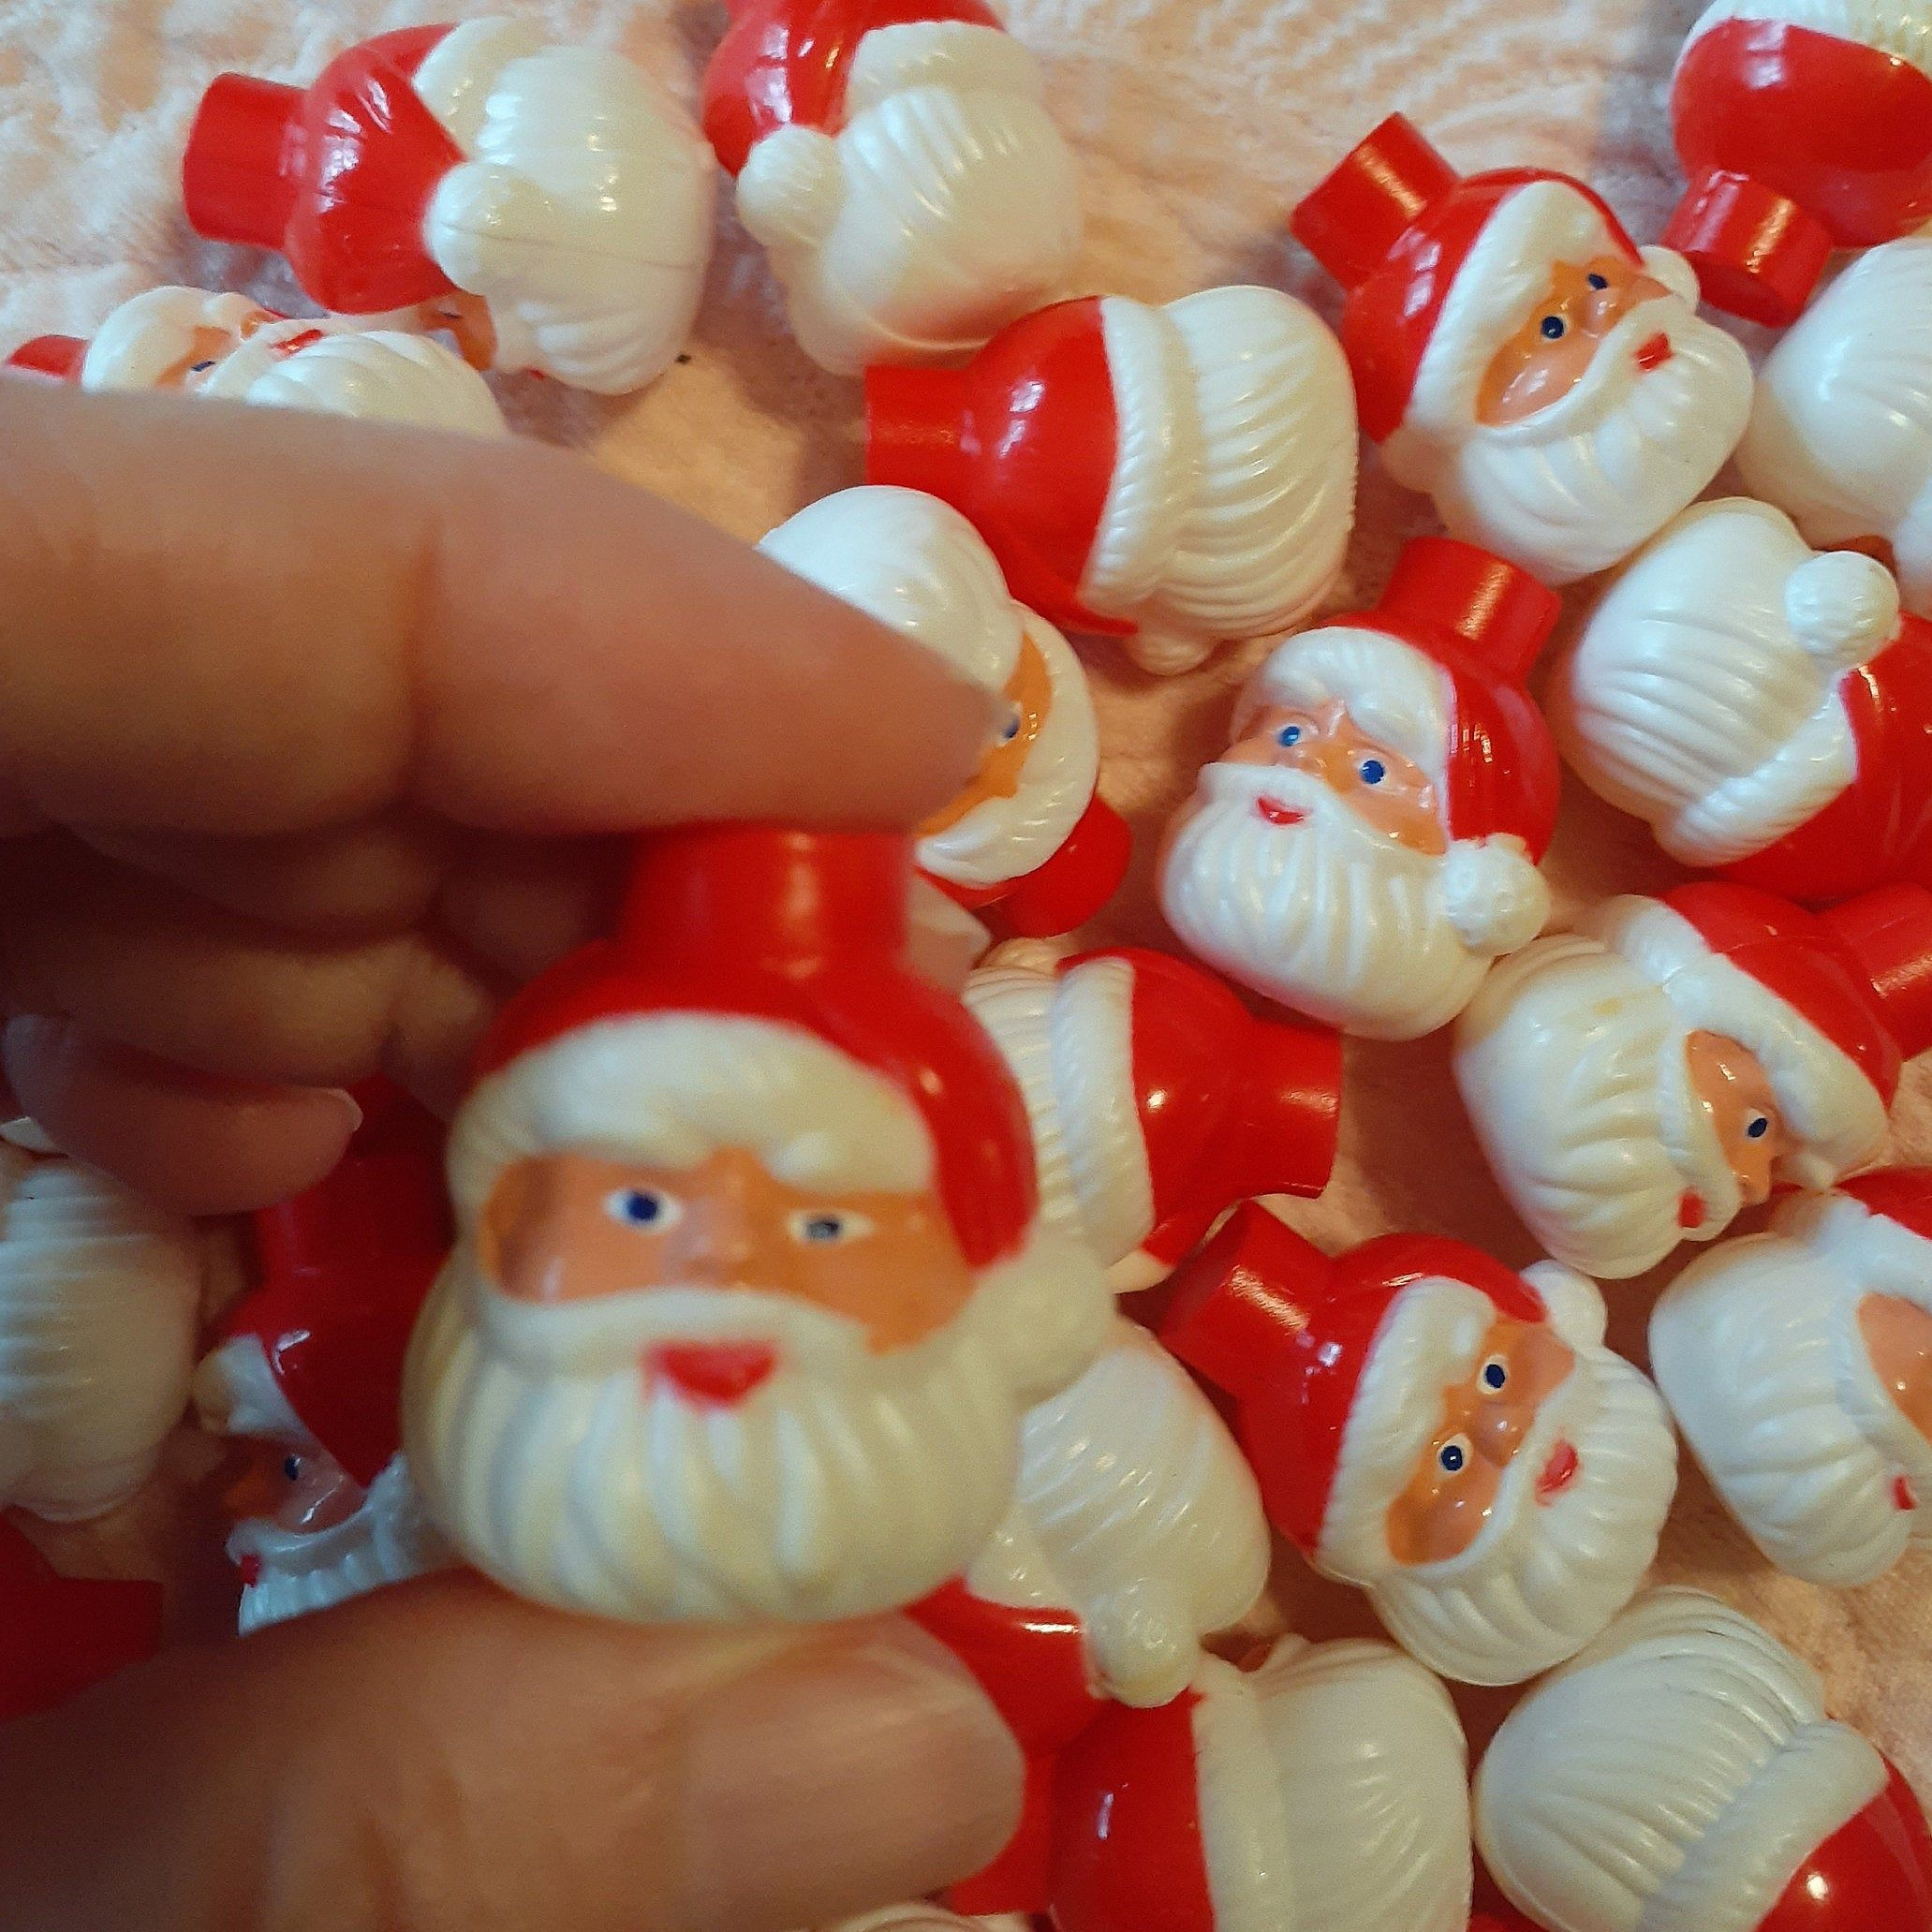 40 Plastic Santa Head Christmas Light Bulb Covers For Crafts By Mendozamvintage On Etsy In 2020 Christmas Light Bulbs Christmas Lights Santa Head